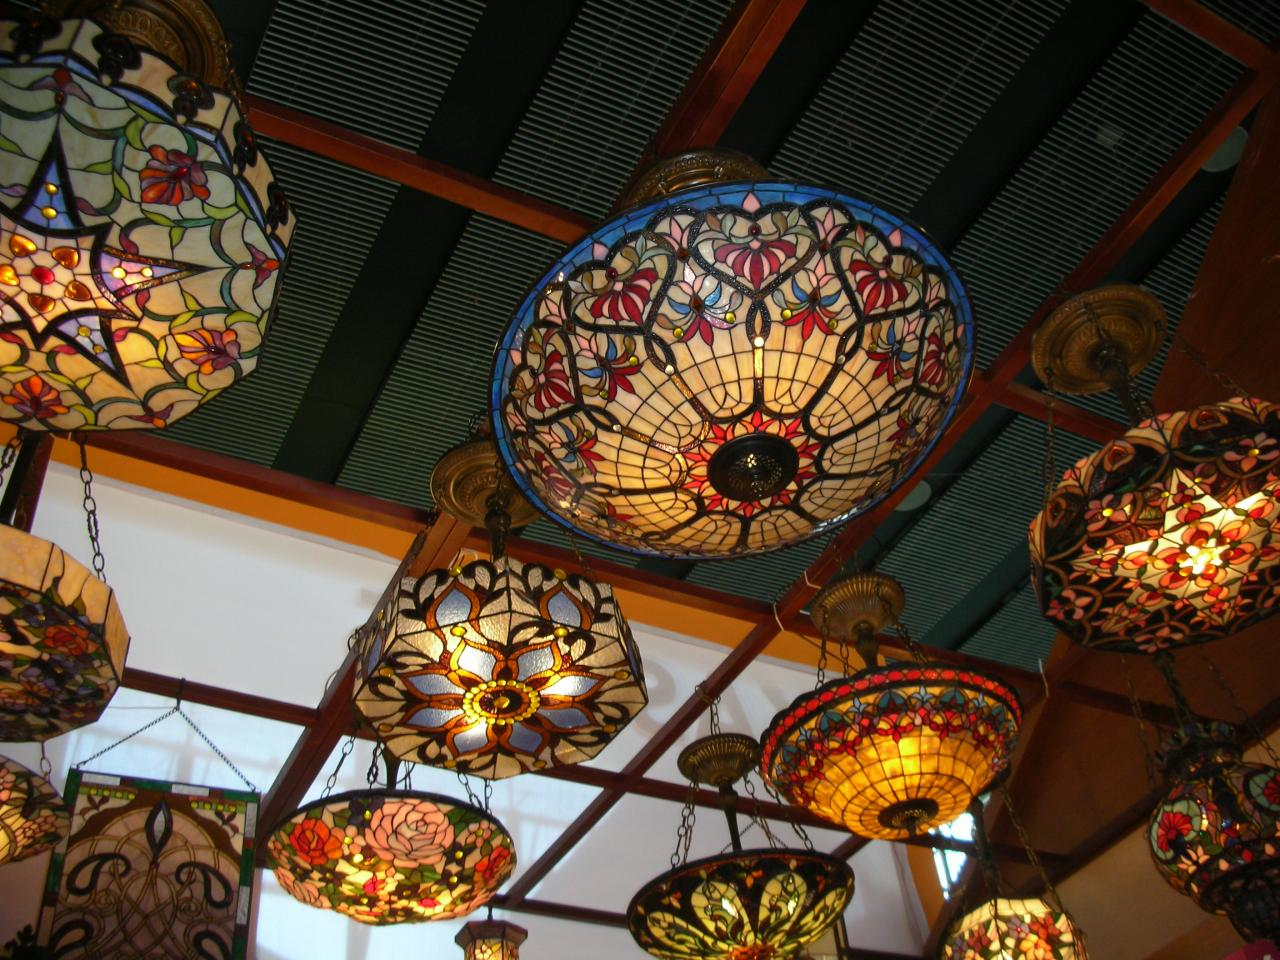 tiffany ceiling fan lights photo - 1